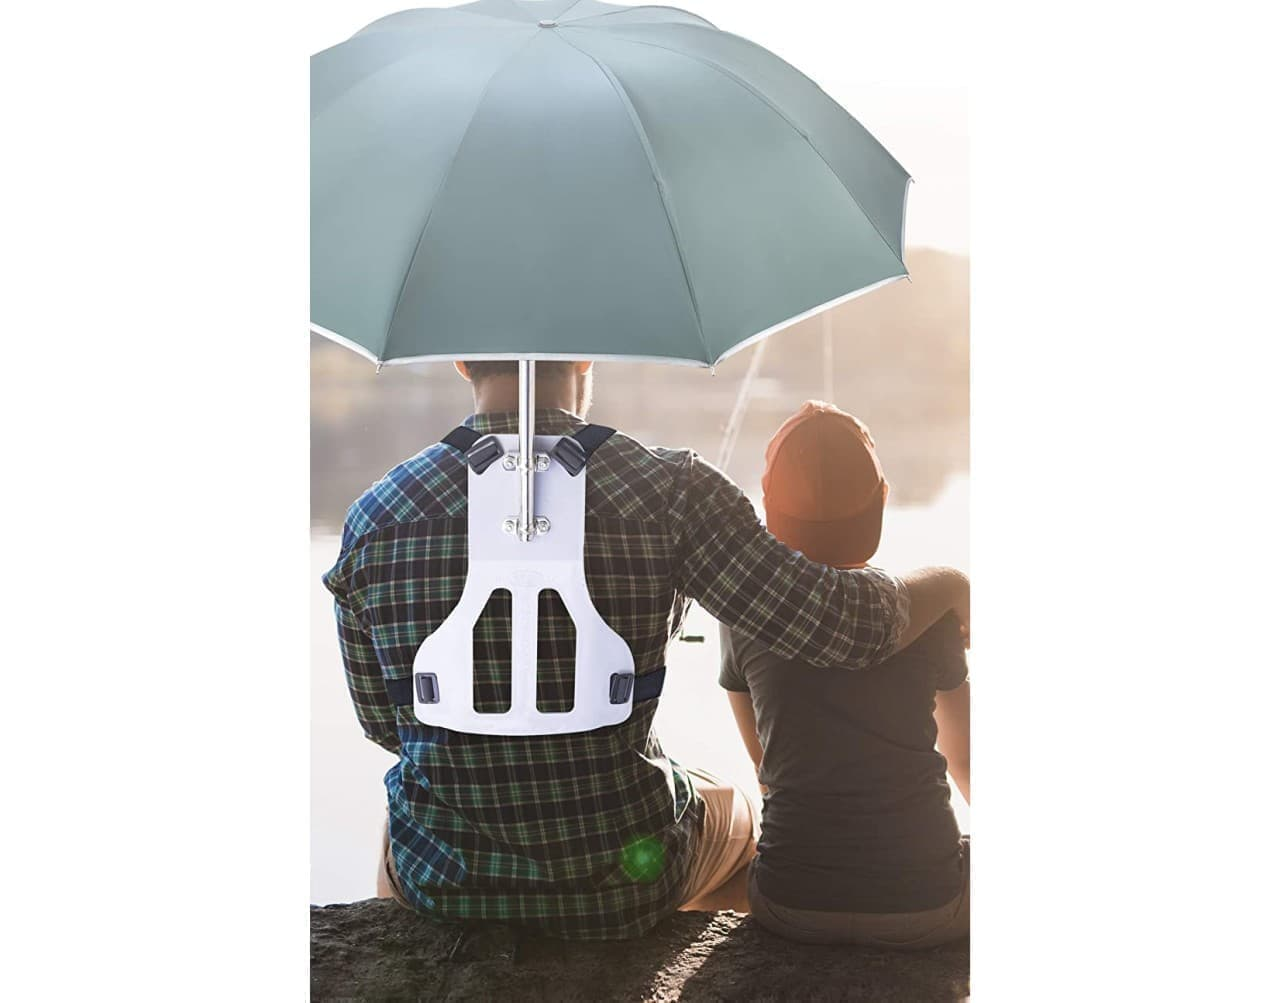 Primo Supplyの「Wearable Hands-Free Umbrella」